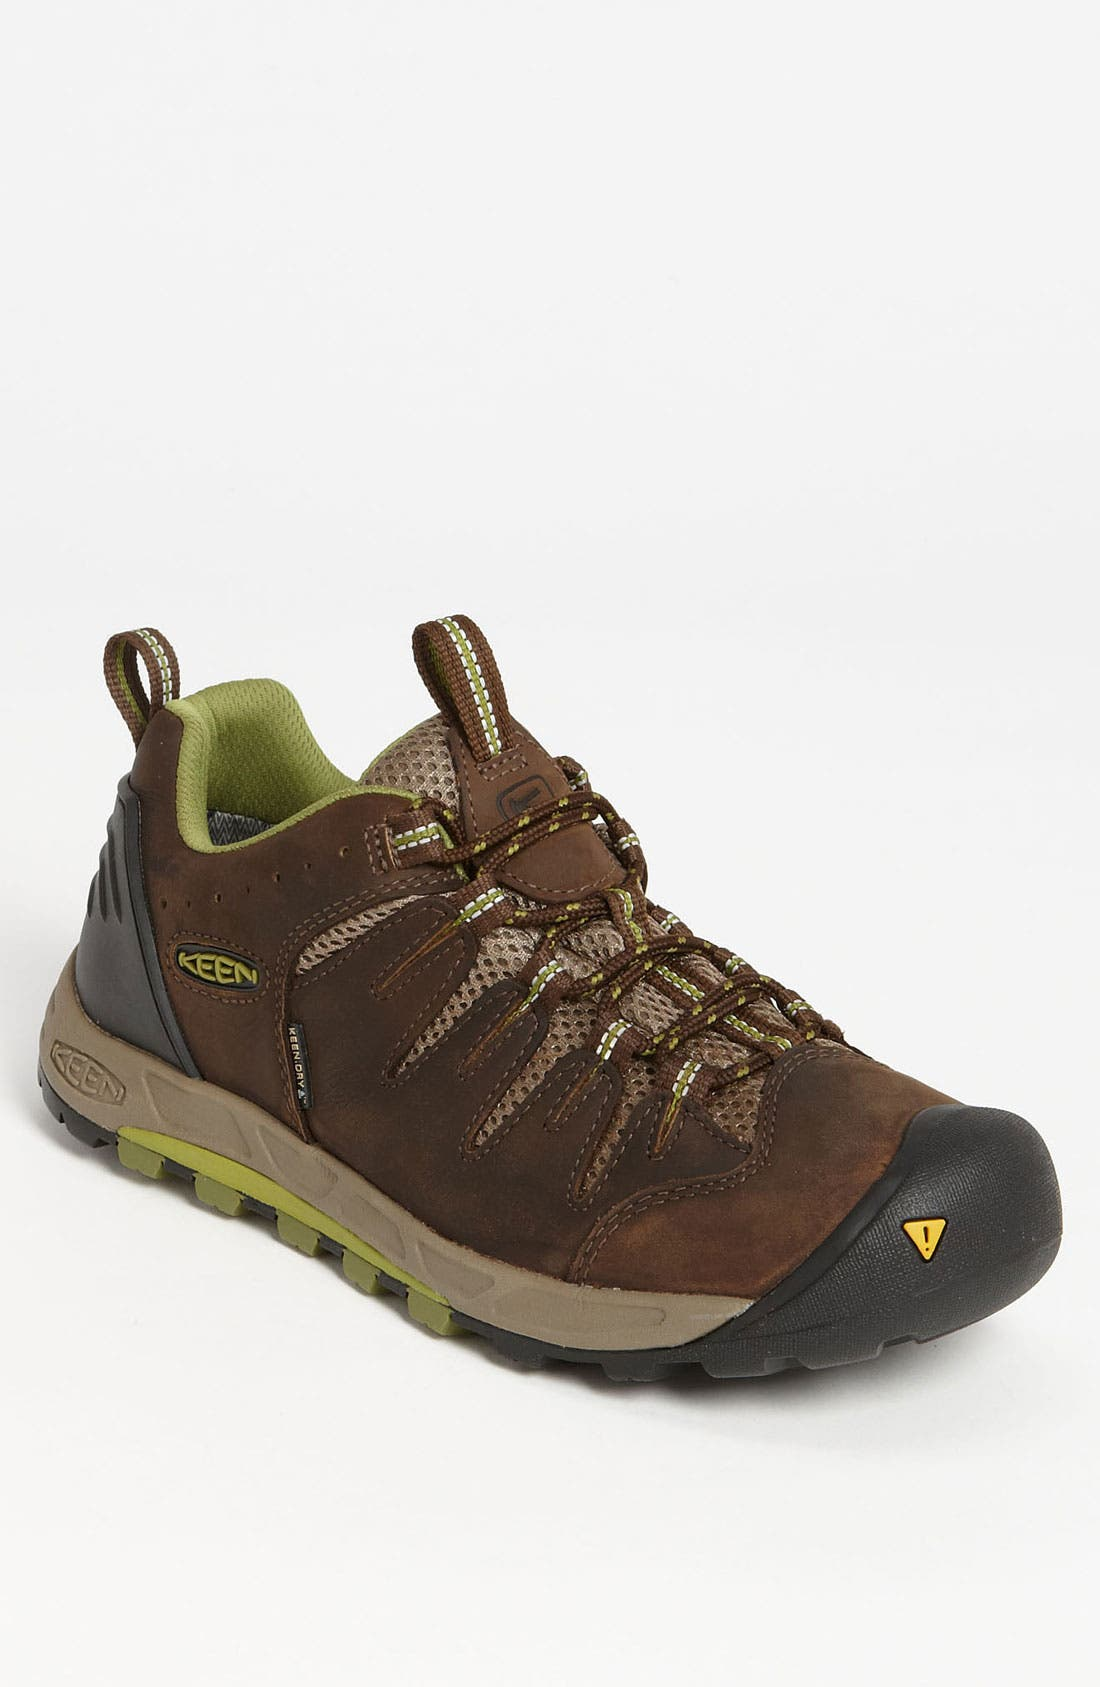 Main Image - Keen 'Bryce' Hiking Shoe (Men)